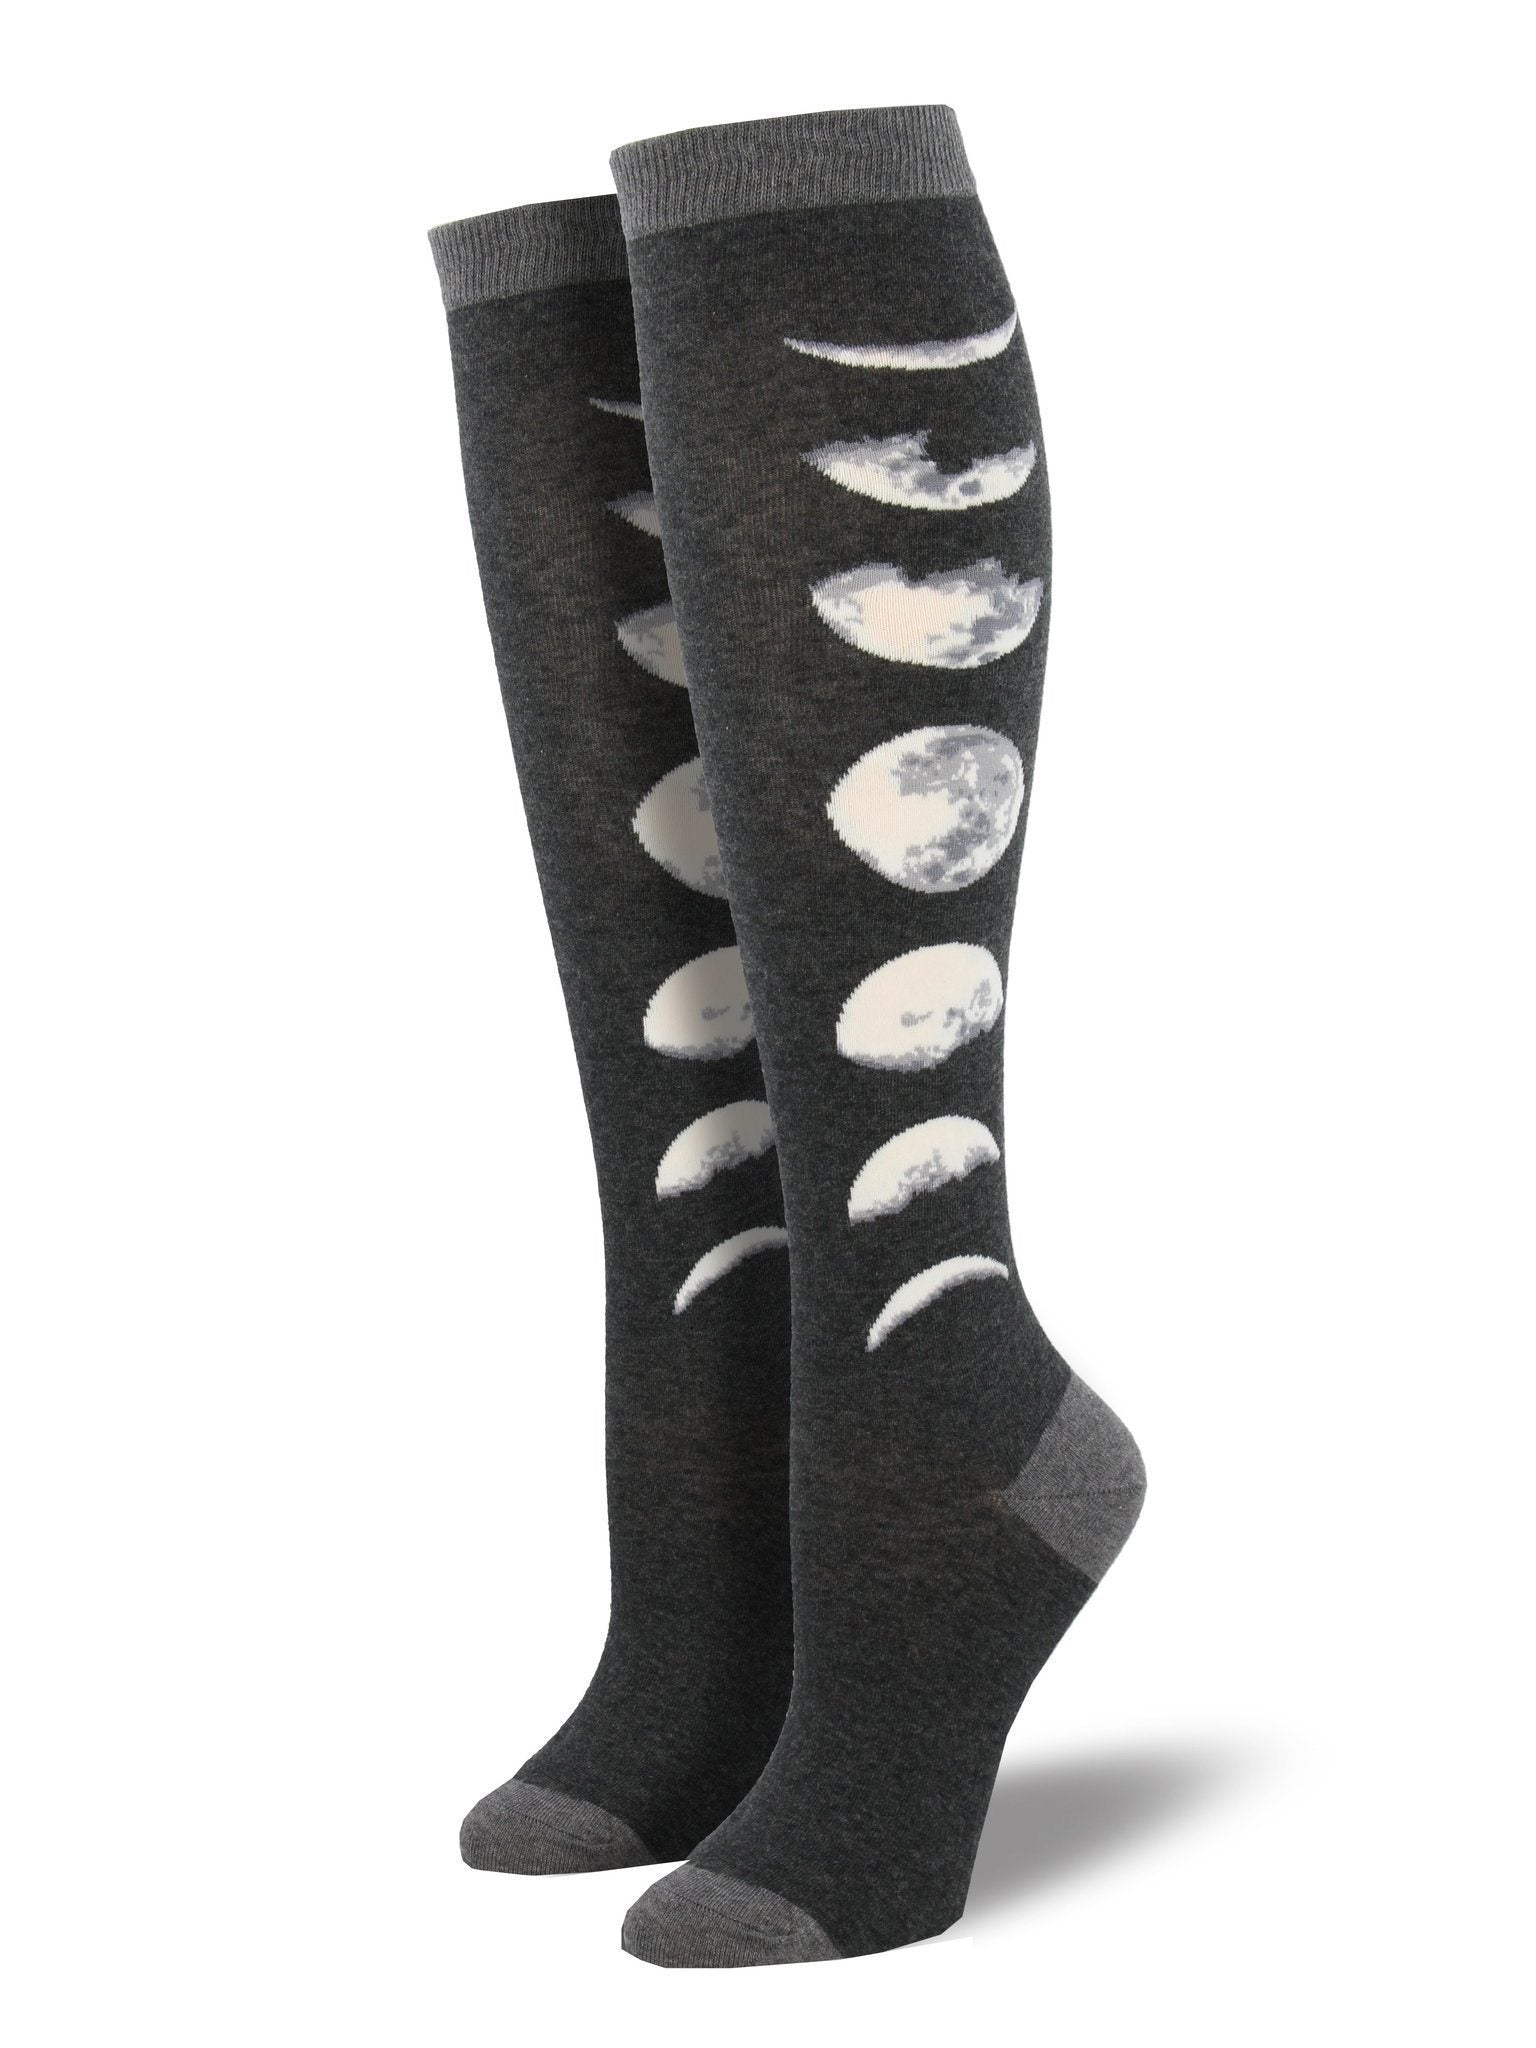 Socksmith - Just a Phase Knee High Socks | Women's - Knock Your Socks Off